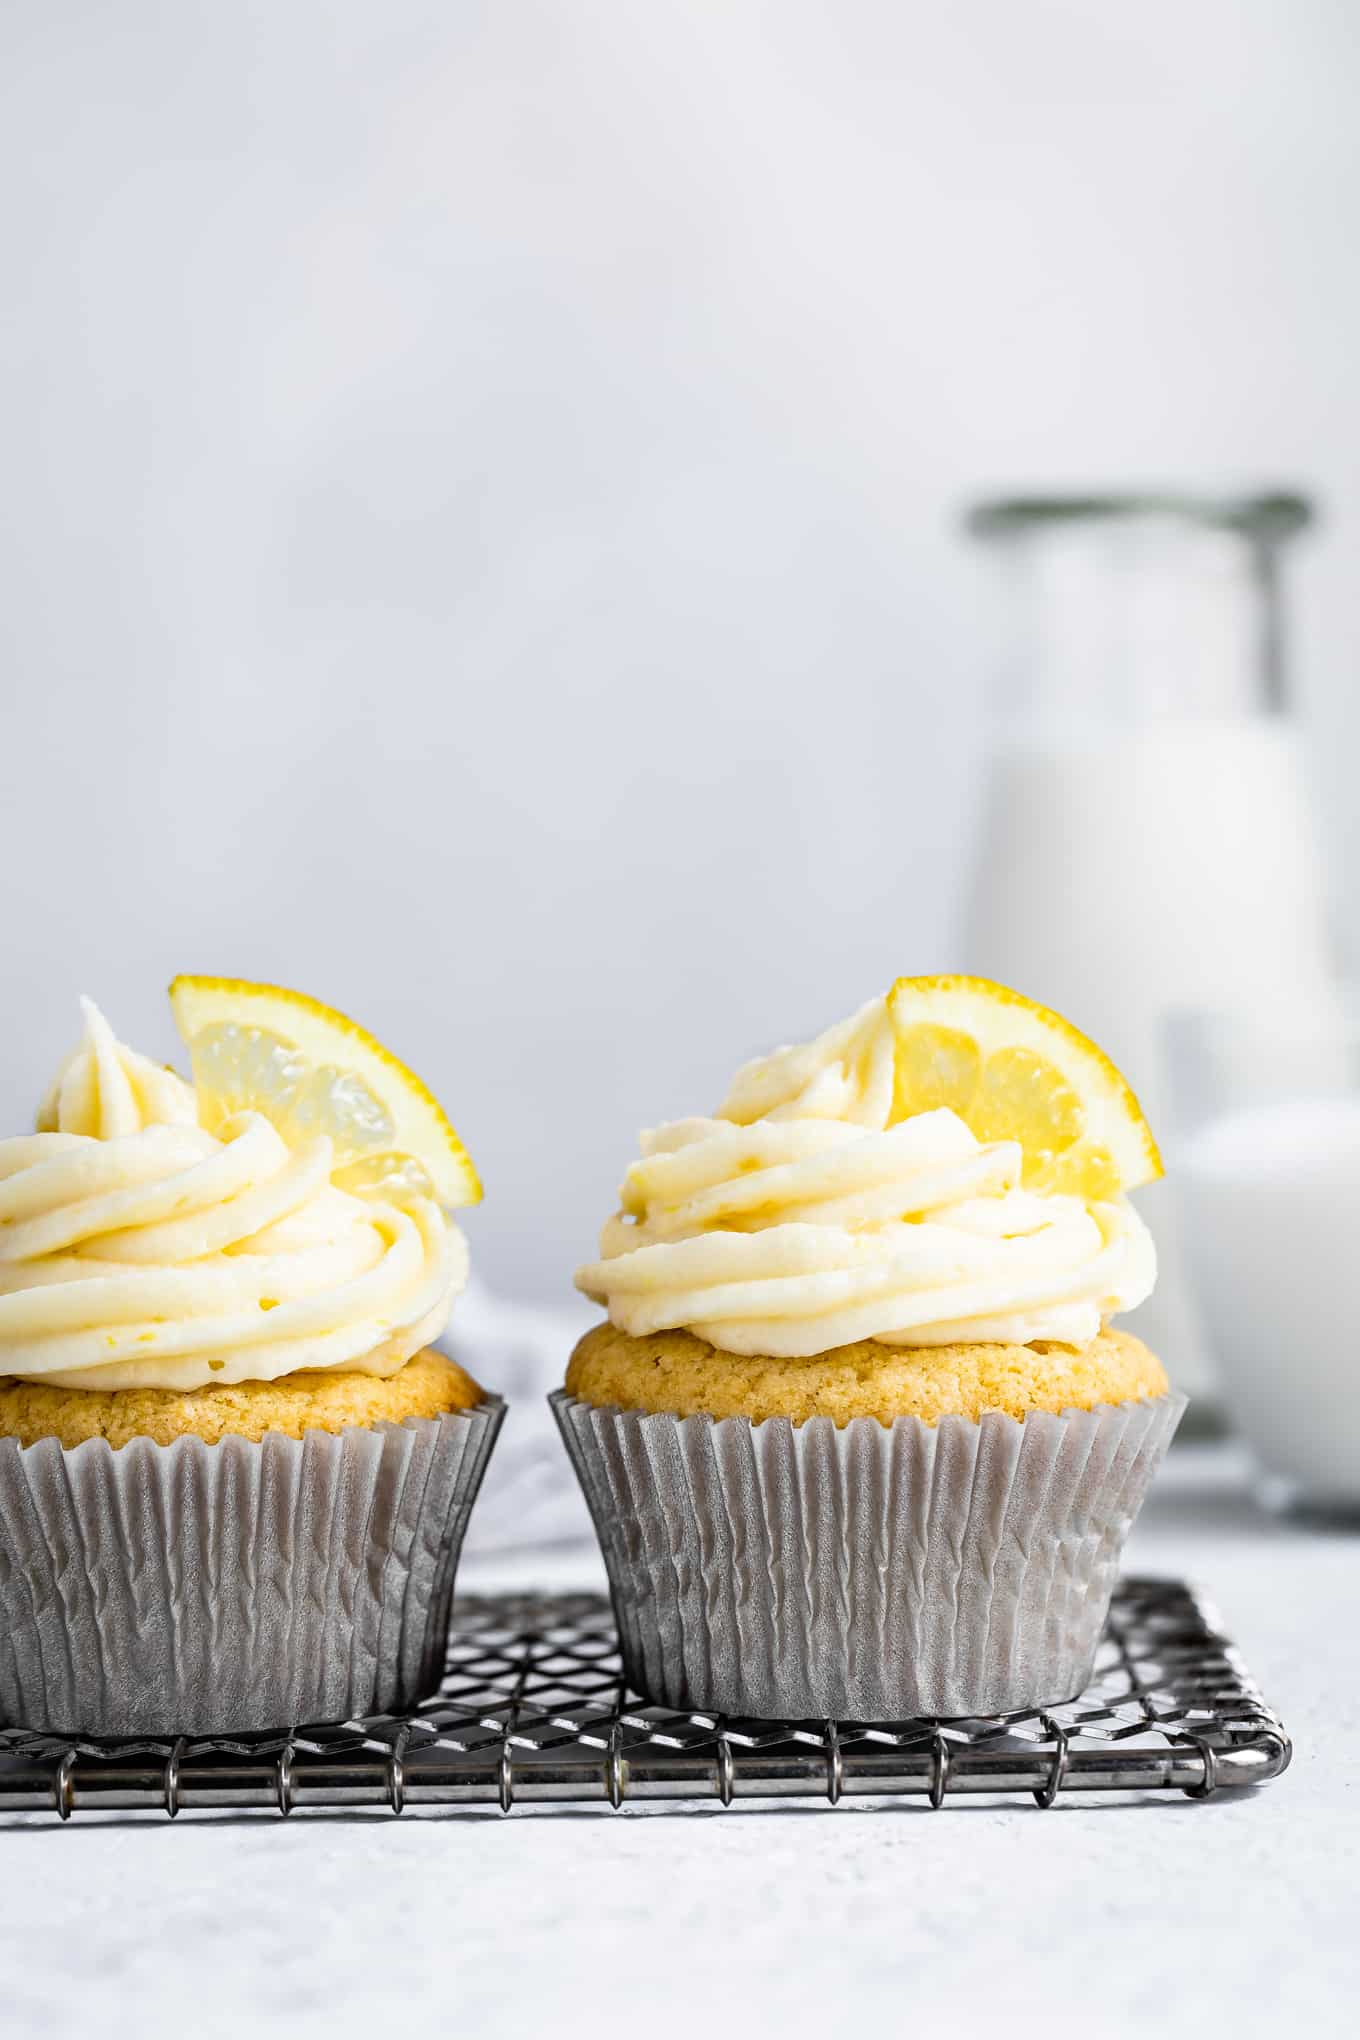 Gluten-Free Lemon Cupcakes with Cream Cheese Frosting